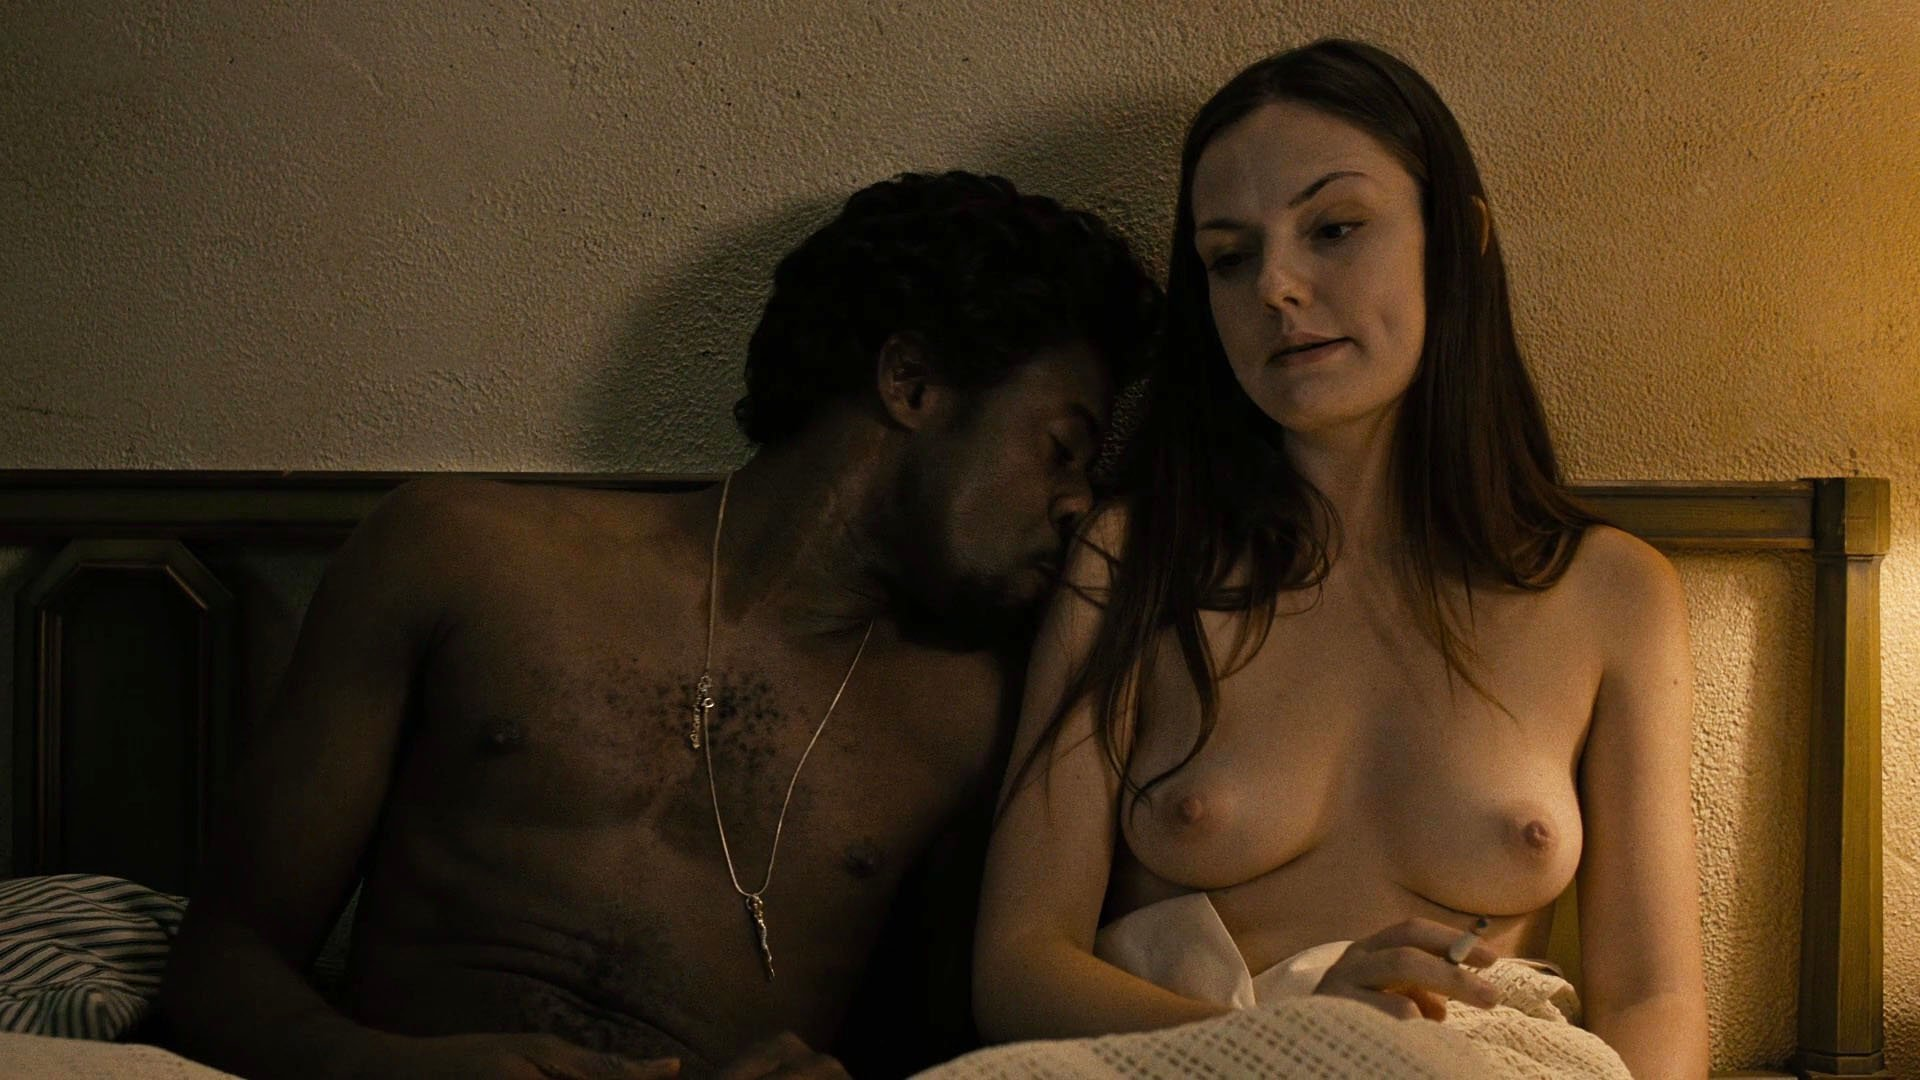 Jamie neumann nude full frontal, emily meade nude sex maggie gyllenhaal and other's surprise